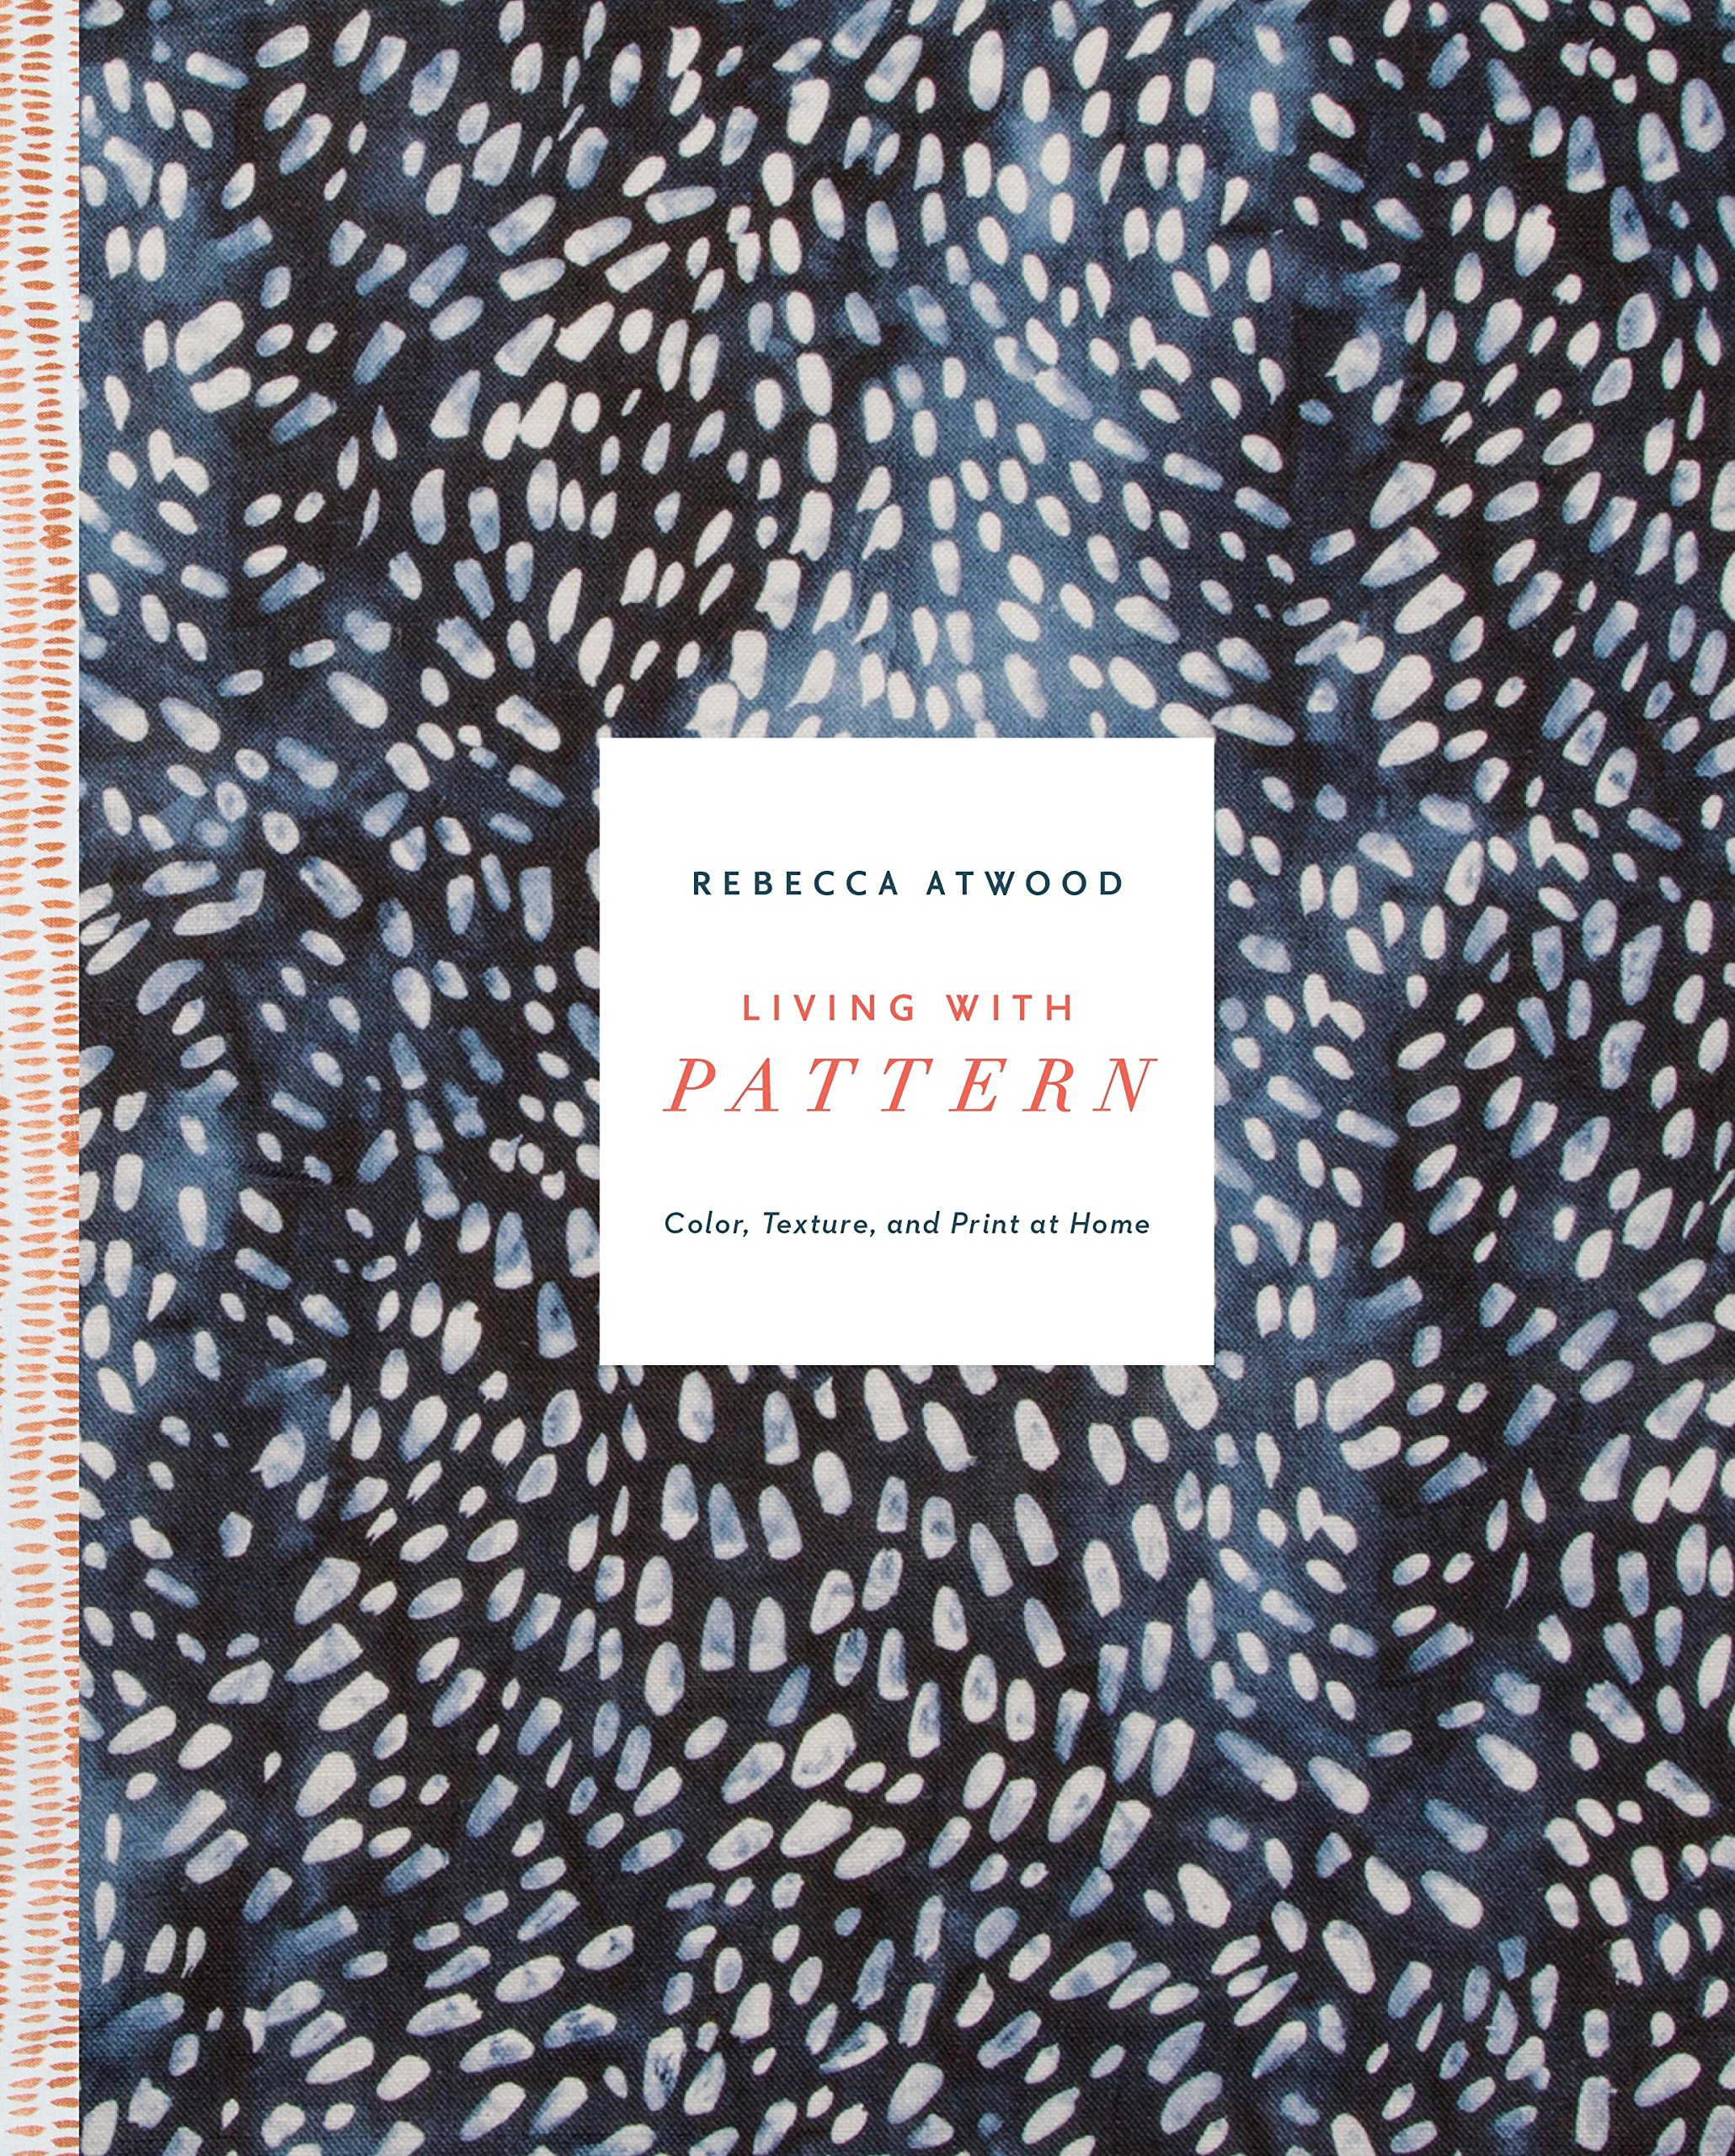 Amazon.com: Upholstery & Fabrics: Books